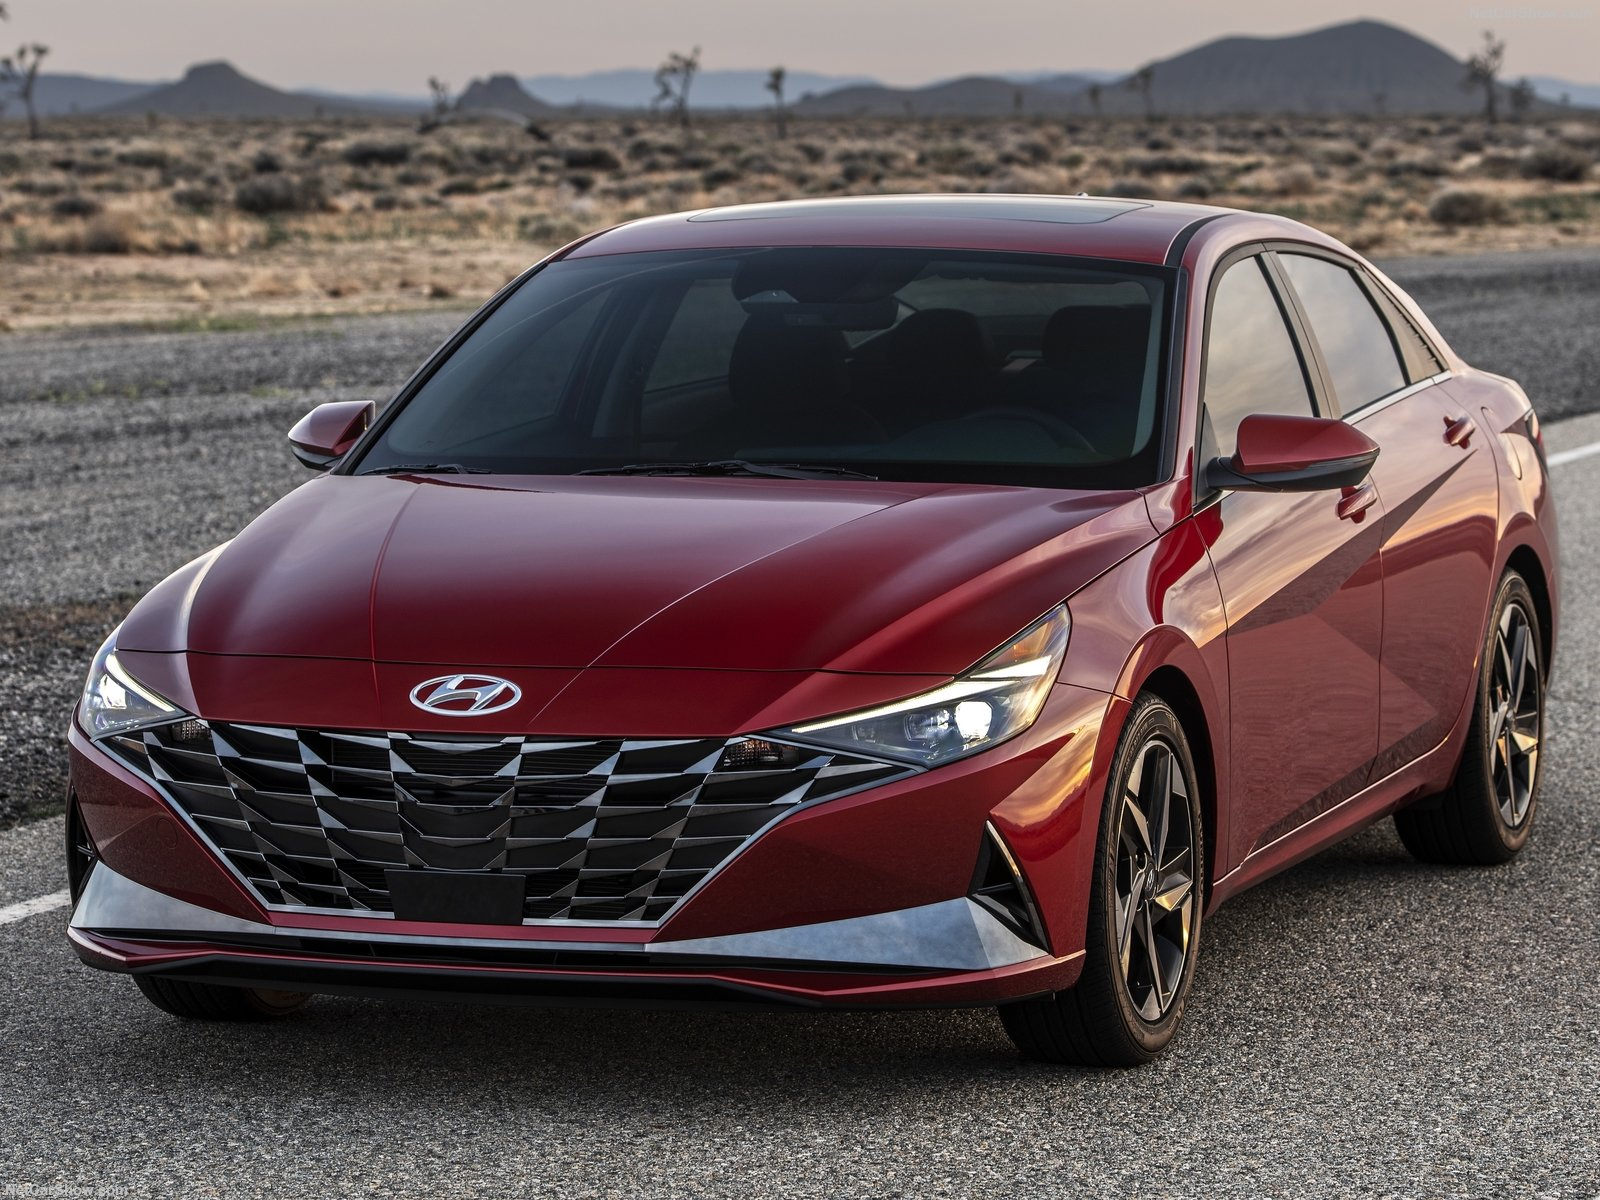 2021 Hyundai Elantra Luxury Sedan Officially Unveiled